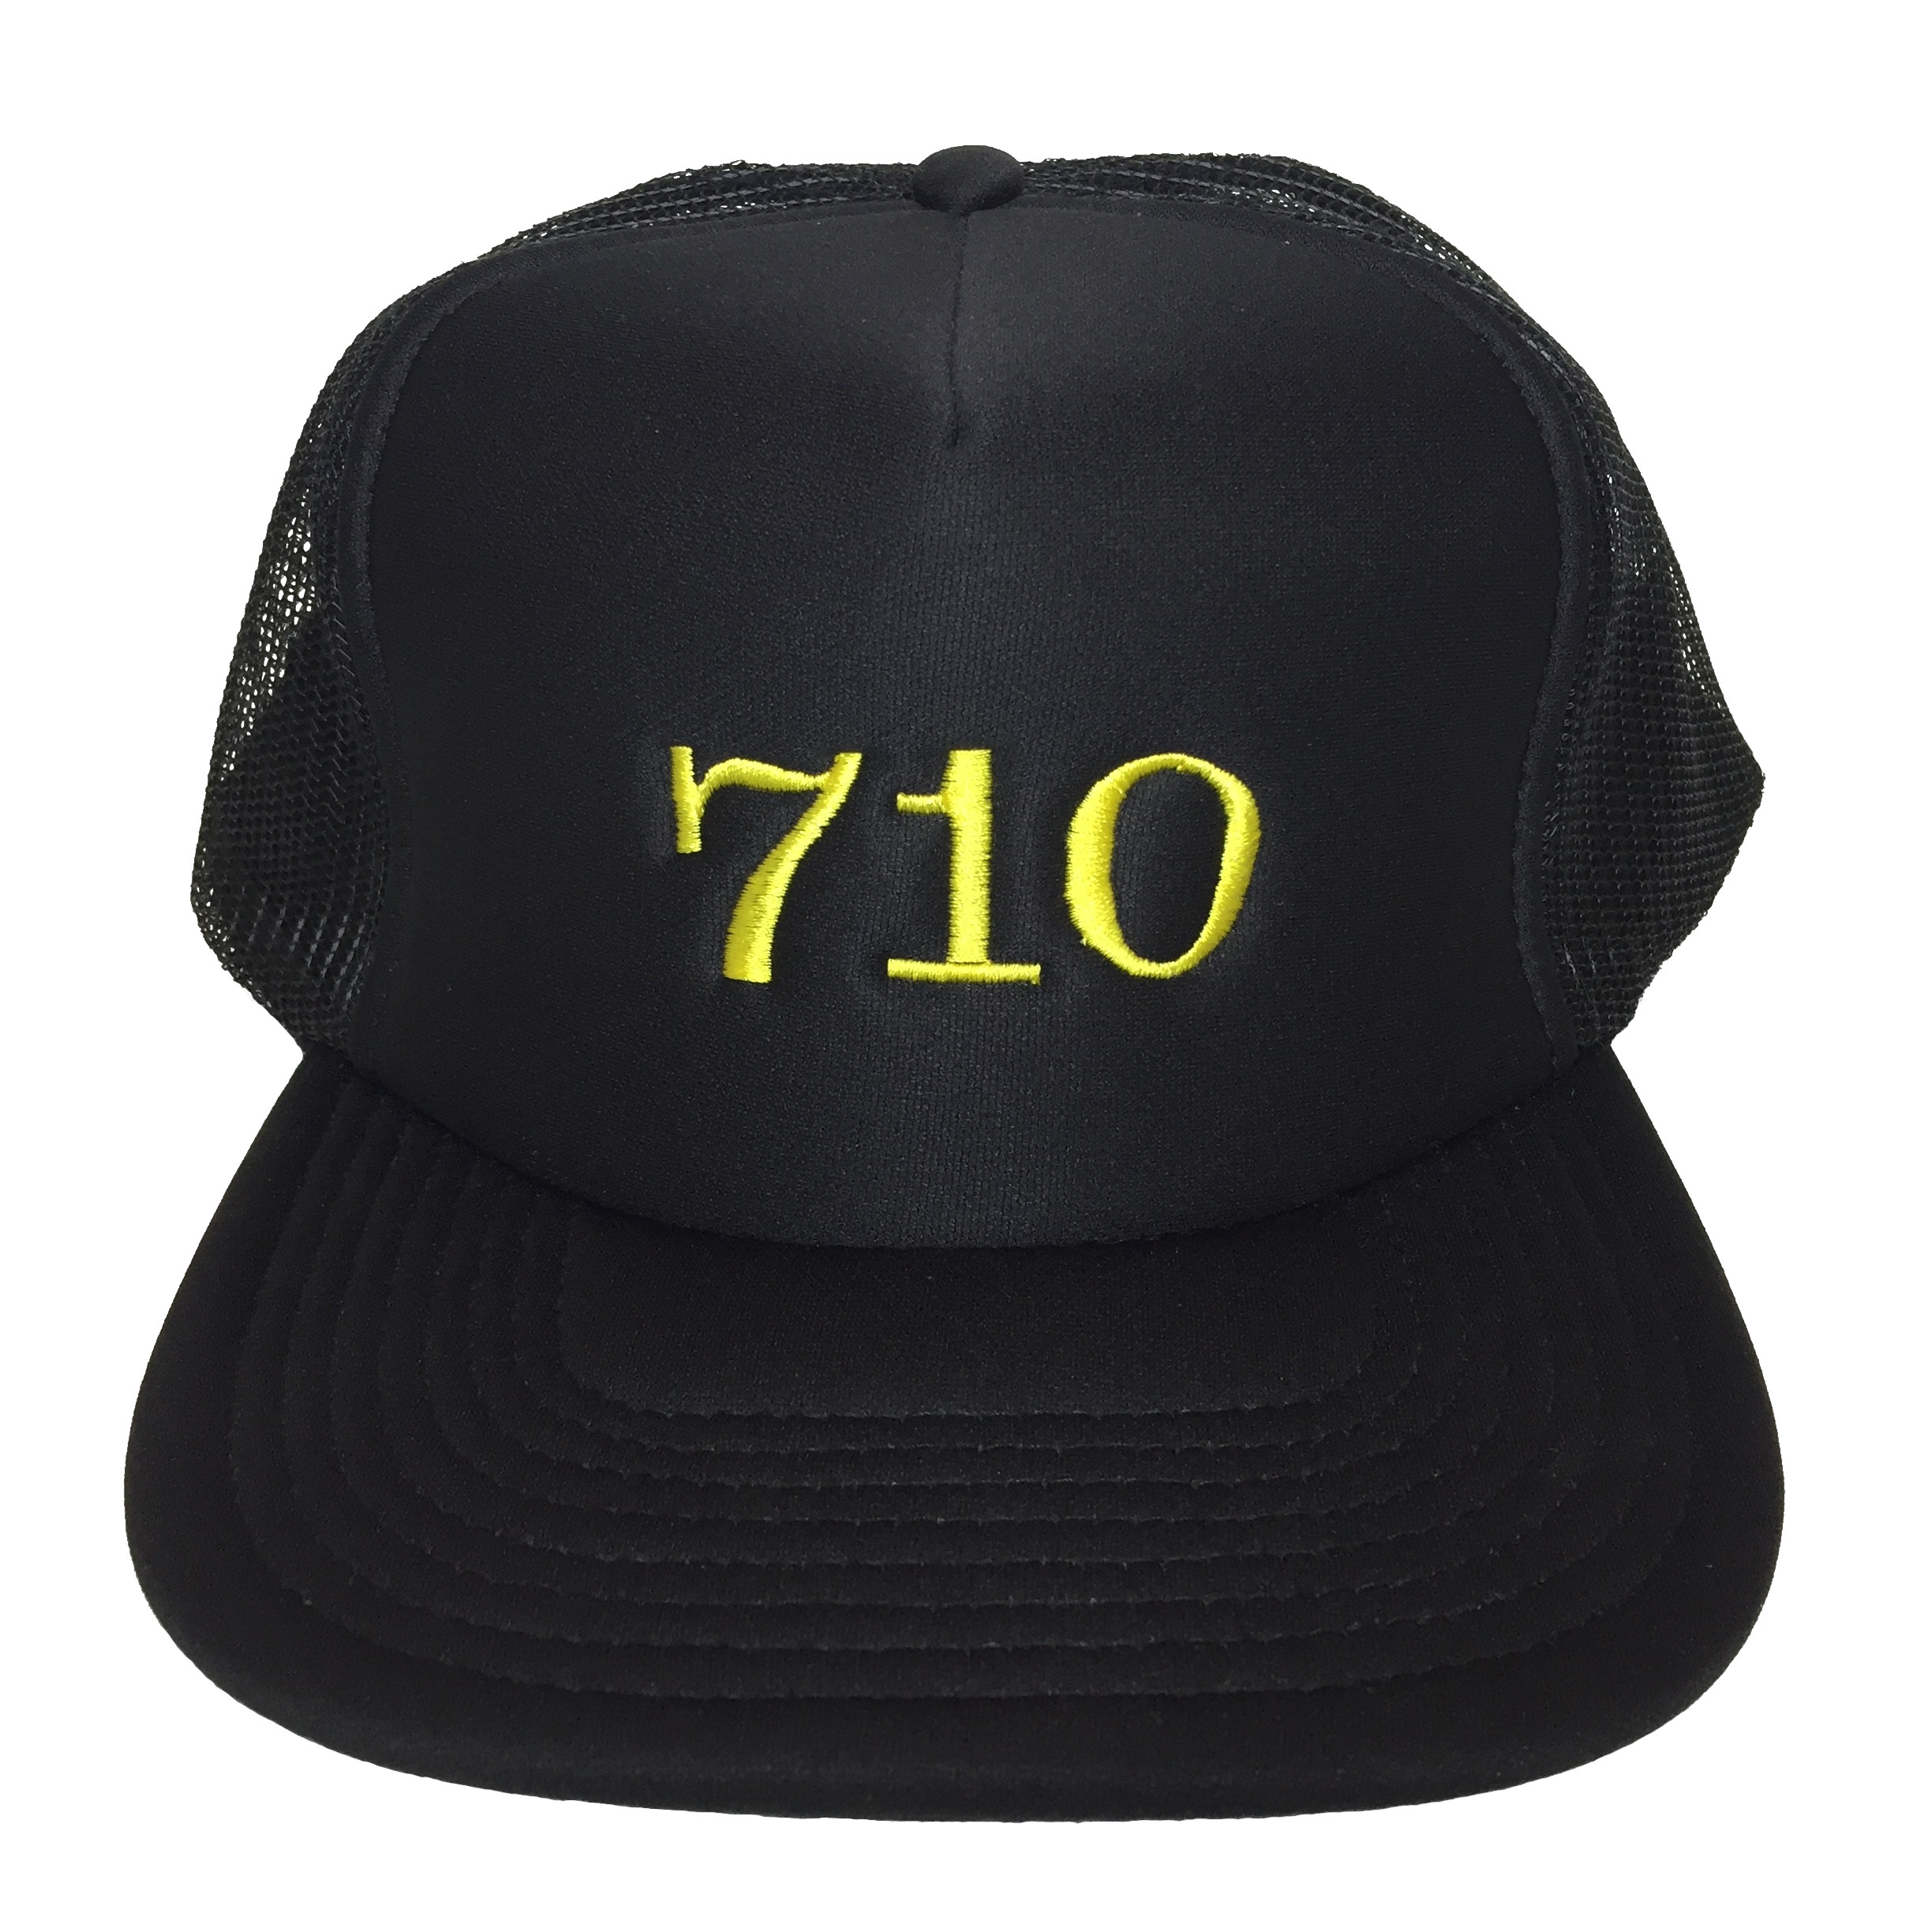 710 Trucker hat Yellow on Black Front View